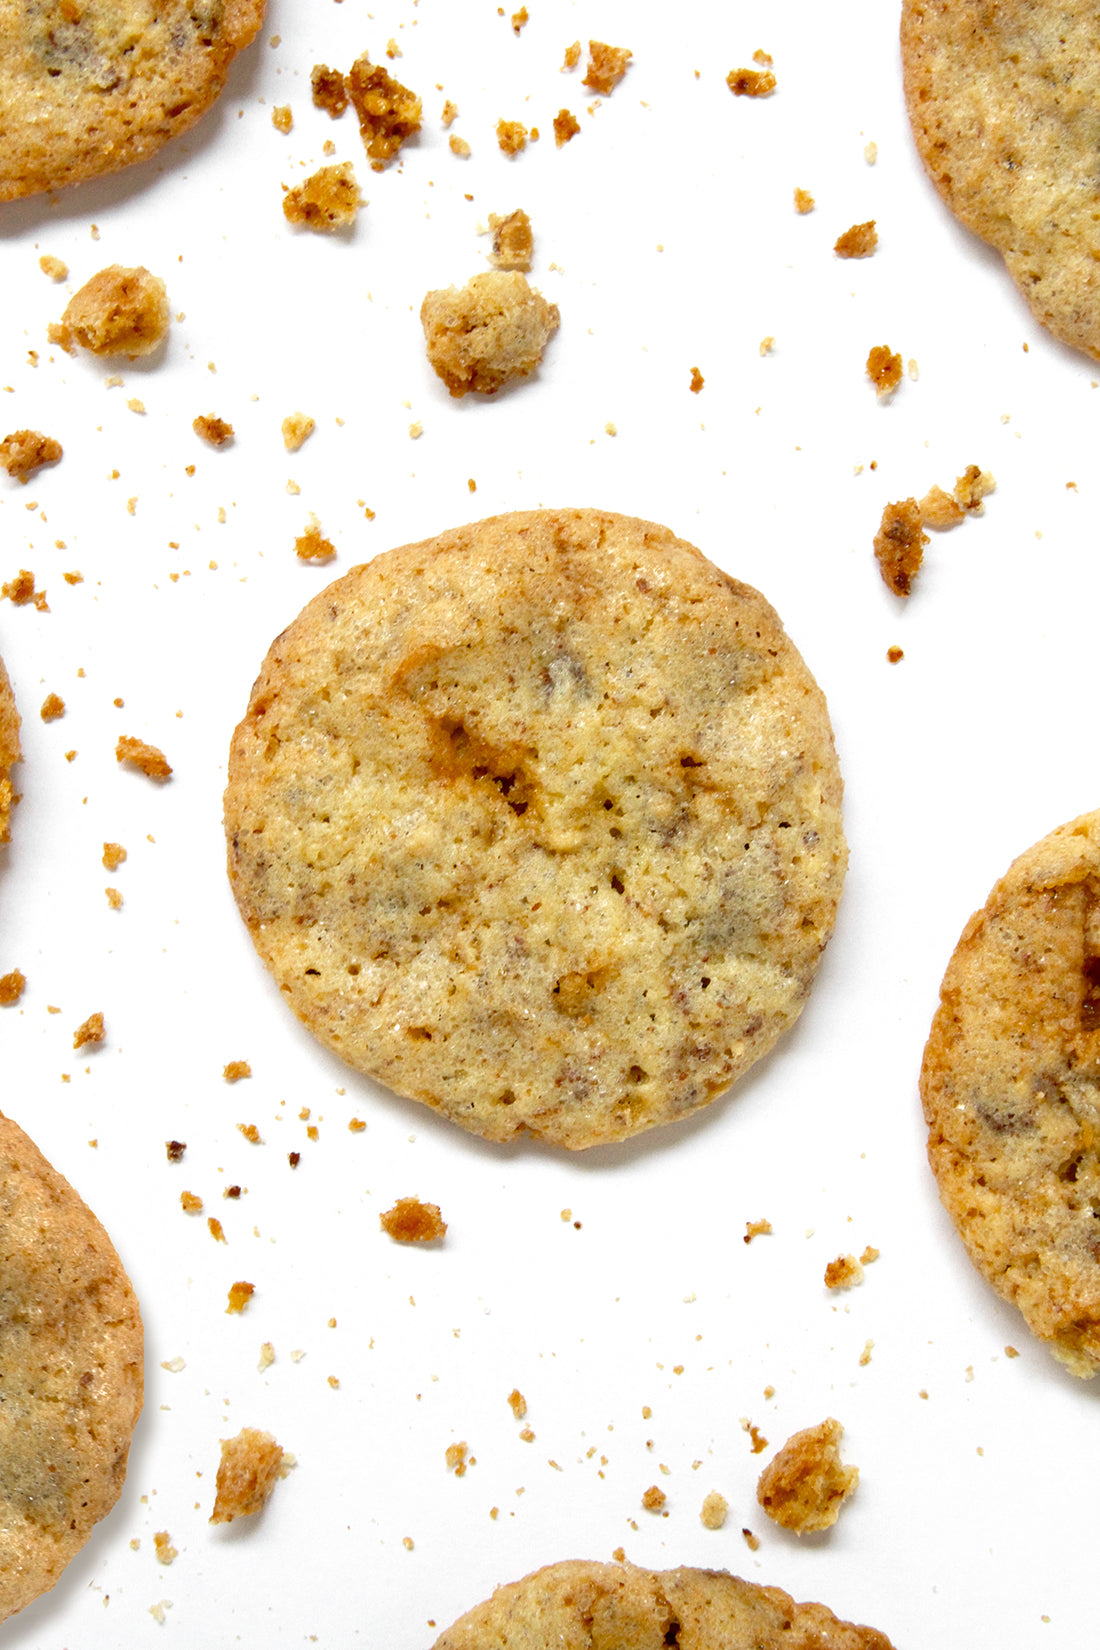 Image from above of Miss Jones Baking Co Sarah's Toffeedoodles surrounded by cookie crumbs